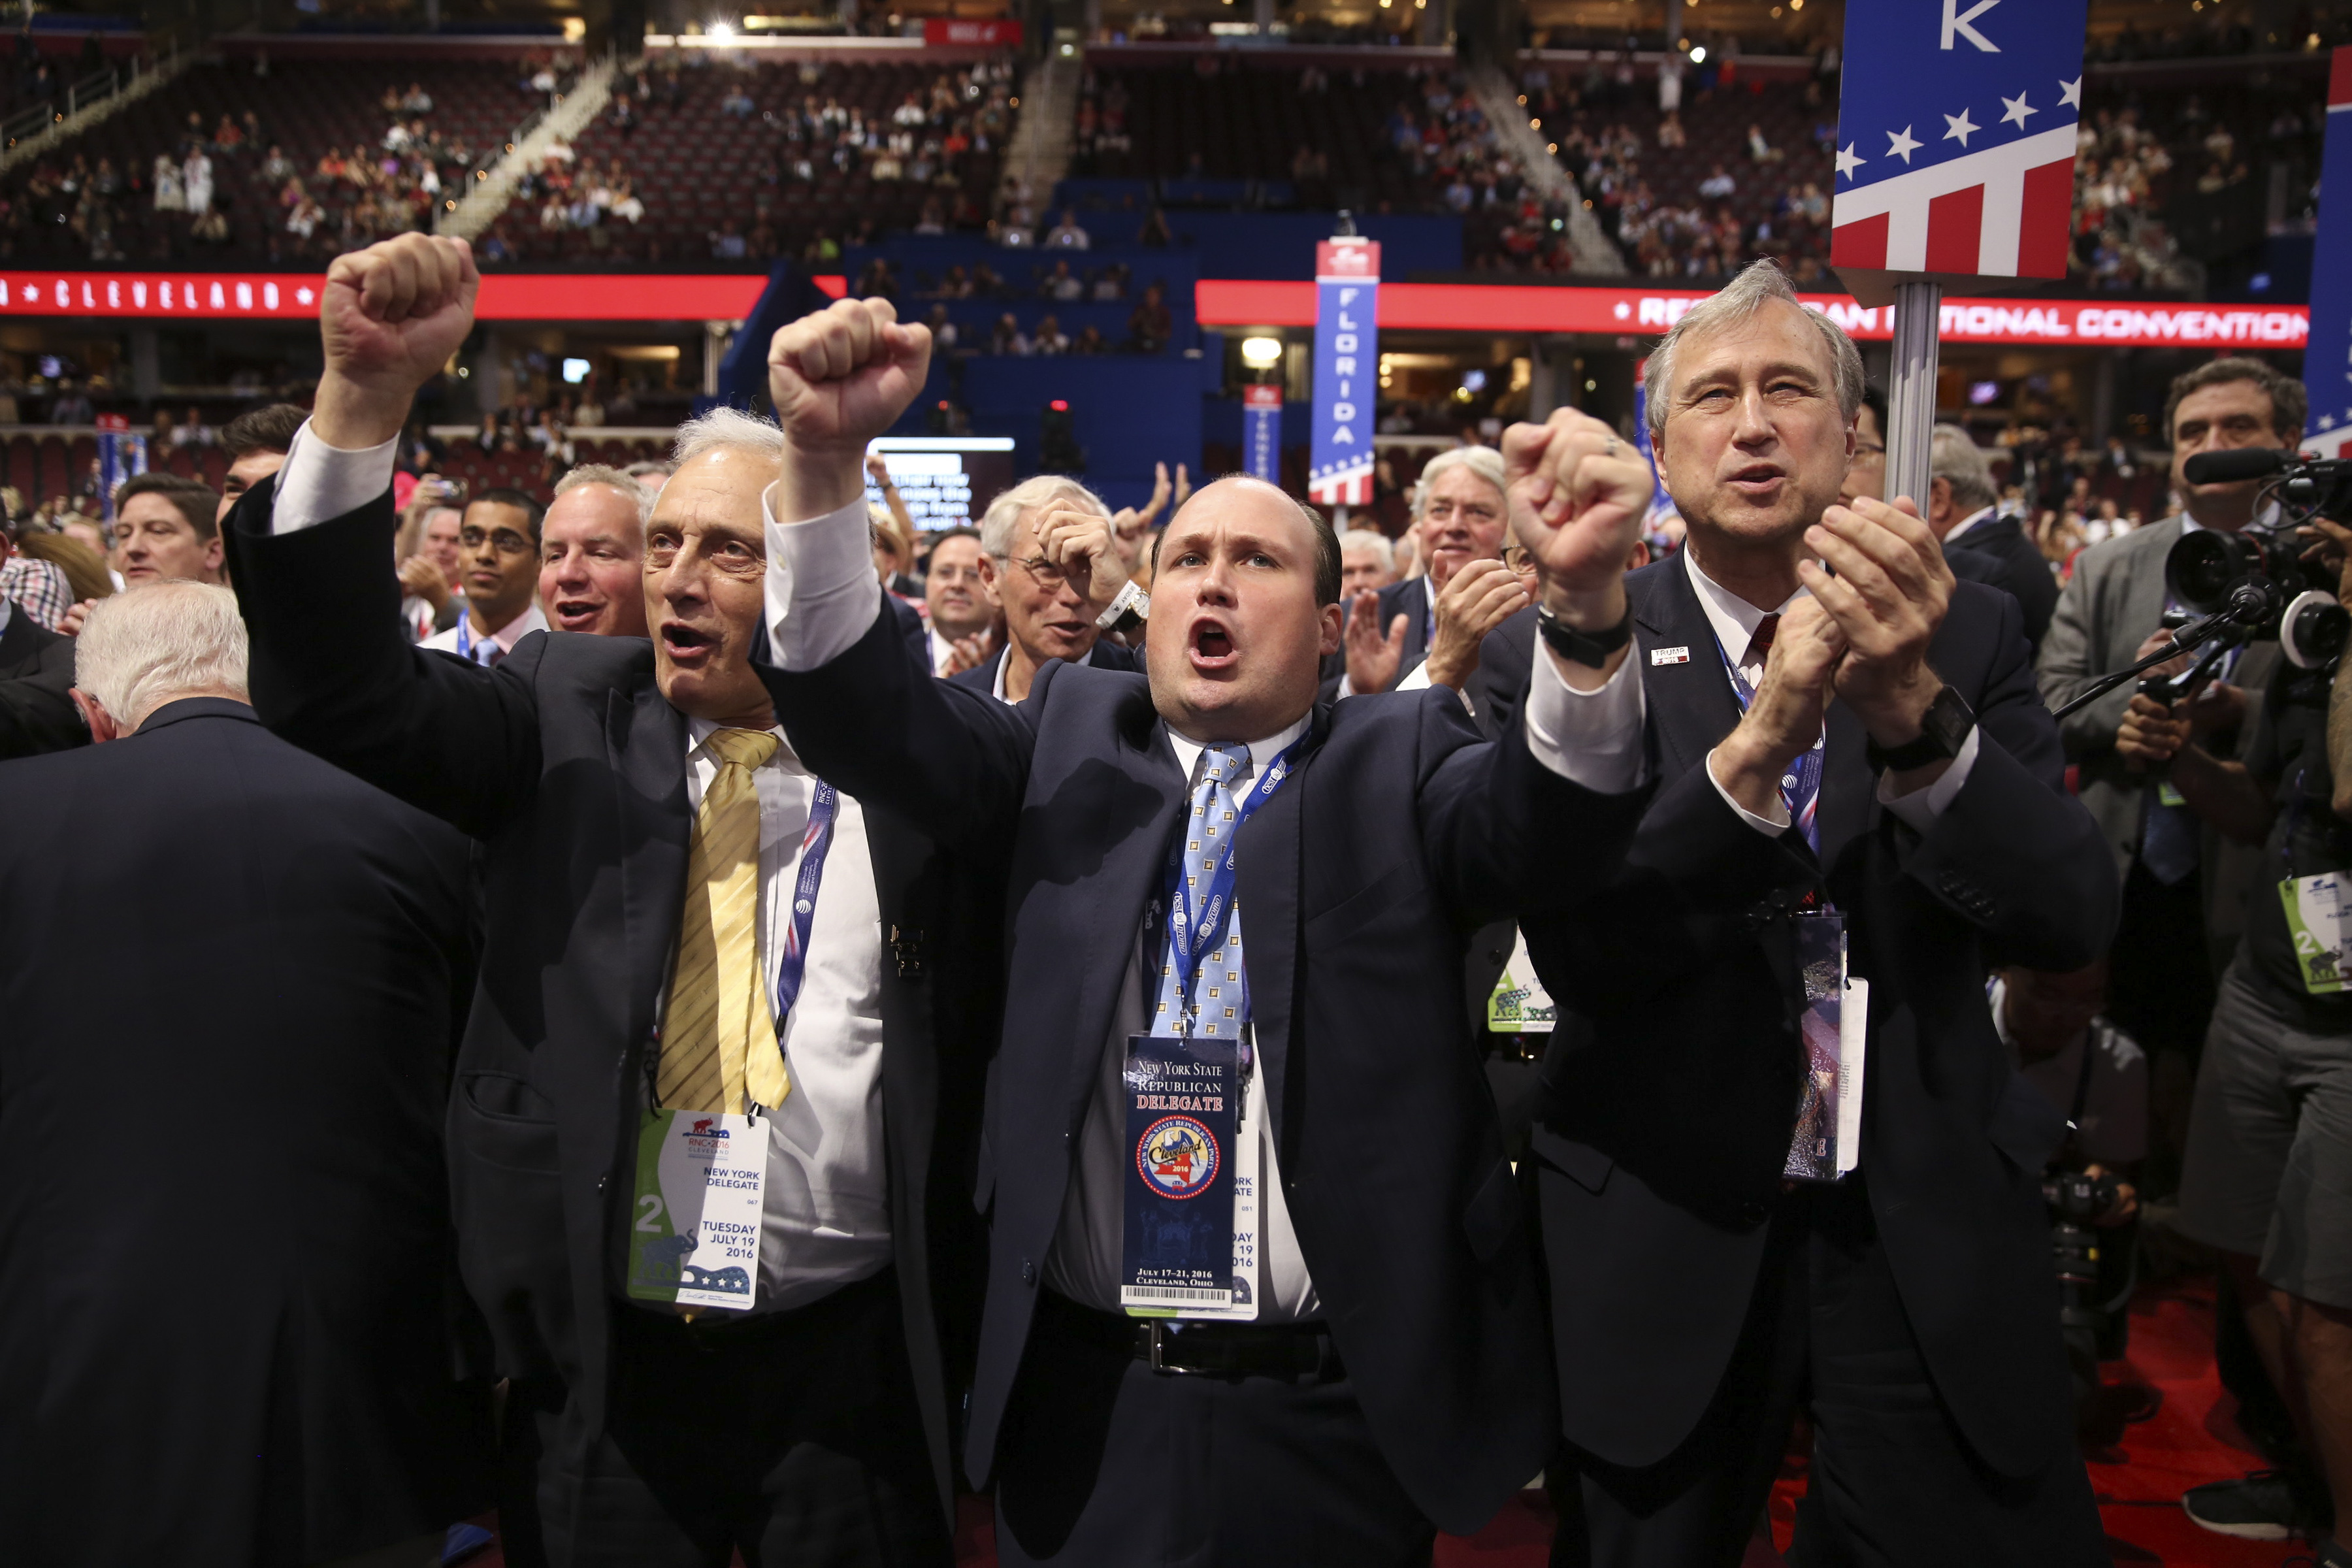 Carl Paladino, left, Erie County Republican Chairman Nicholas Langworthy and State Republican Chairman Ed Cox during the roll call vote during day two of the Republican National Convention. (Damon Winter/The New York Times)